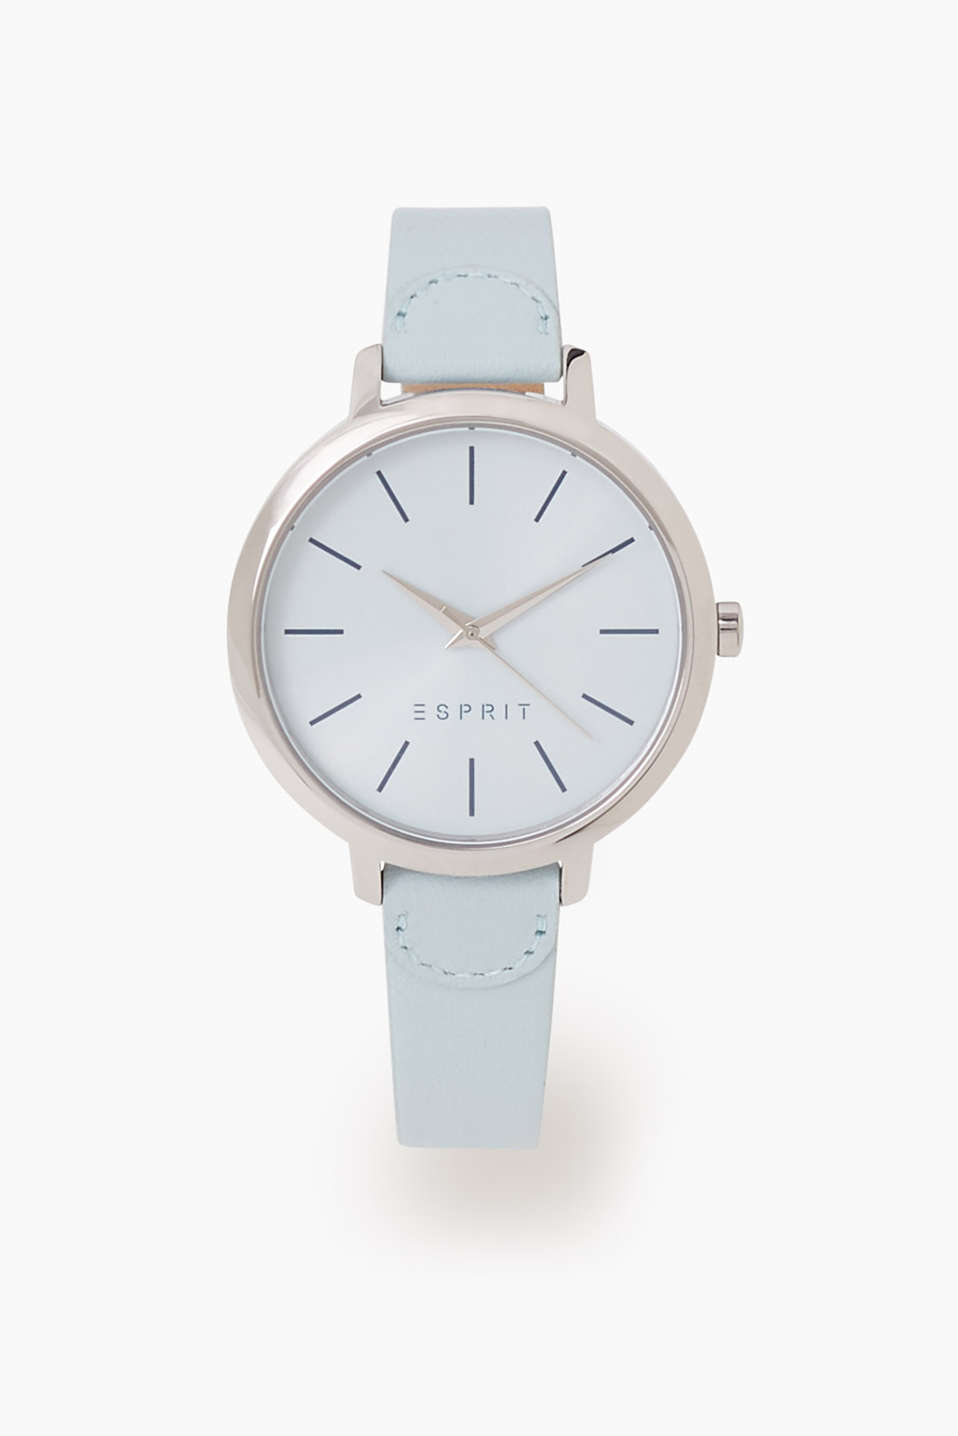 In a minimalist design: watch with a silver-coloured, stainless-steel casing